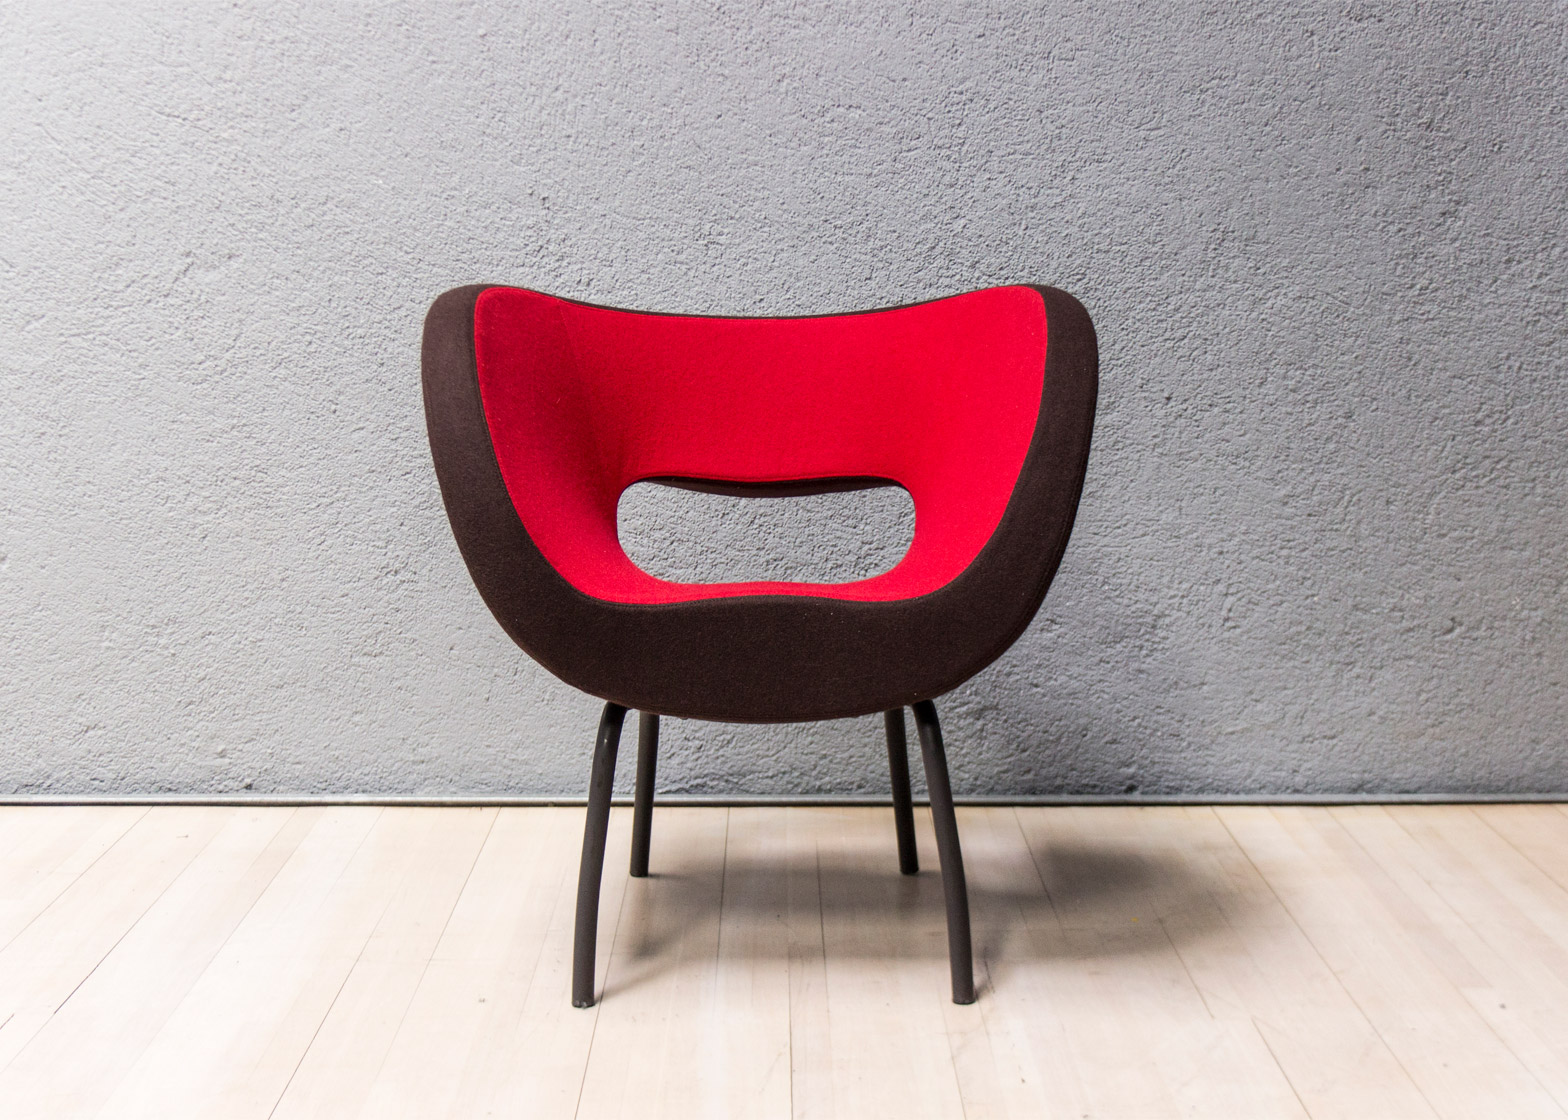 The new Watergate chairs designed by Ron Arad and Moroso